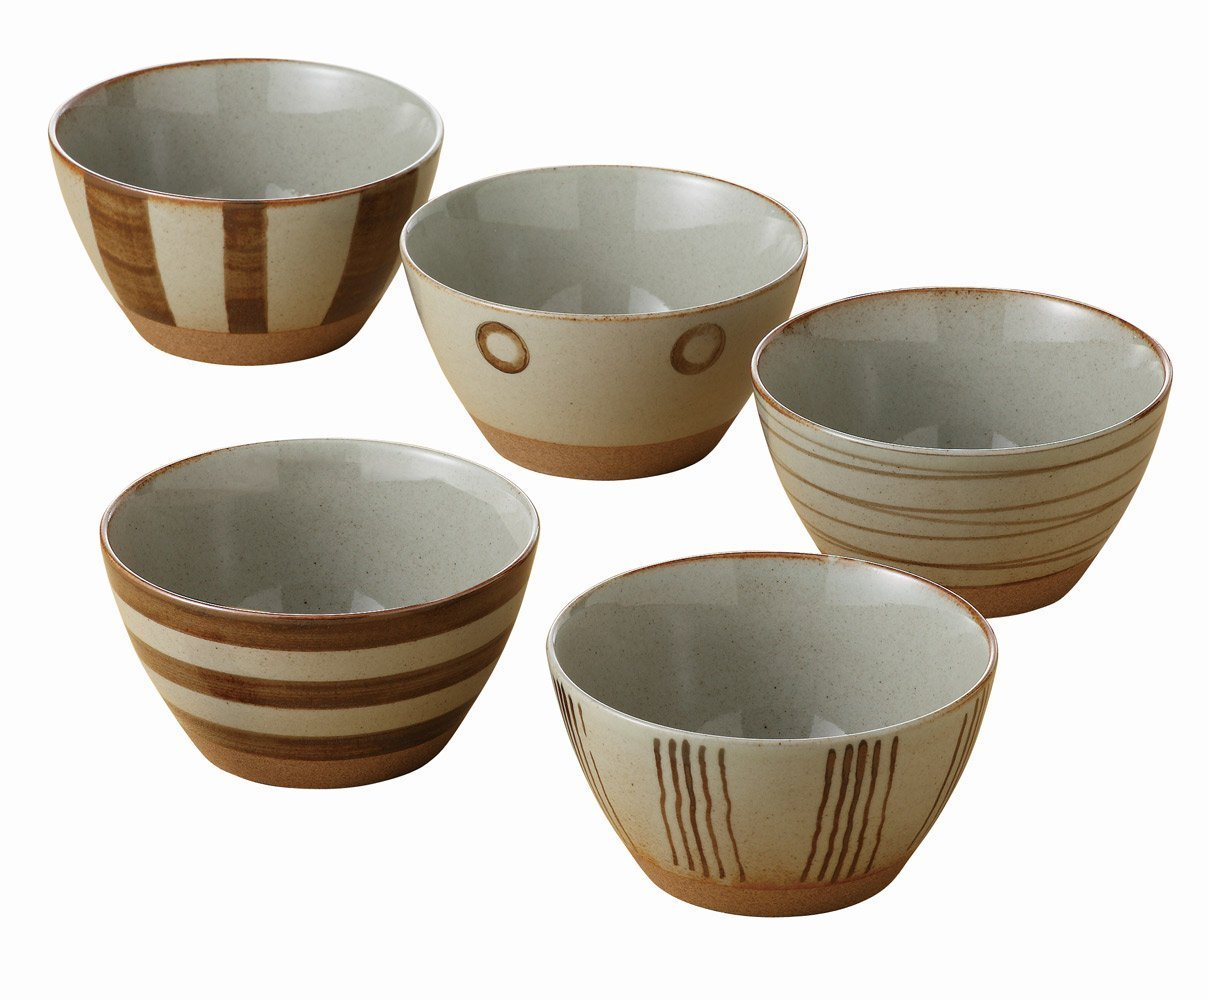 CALORE bowl set